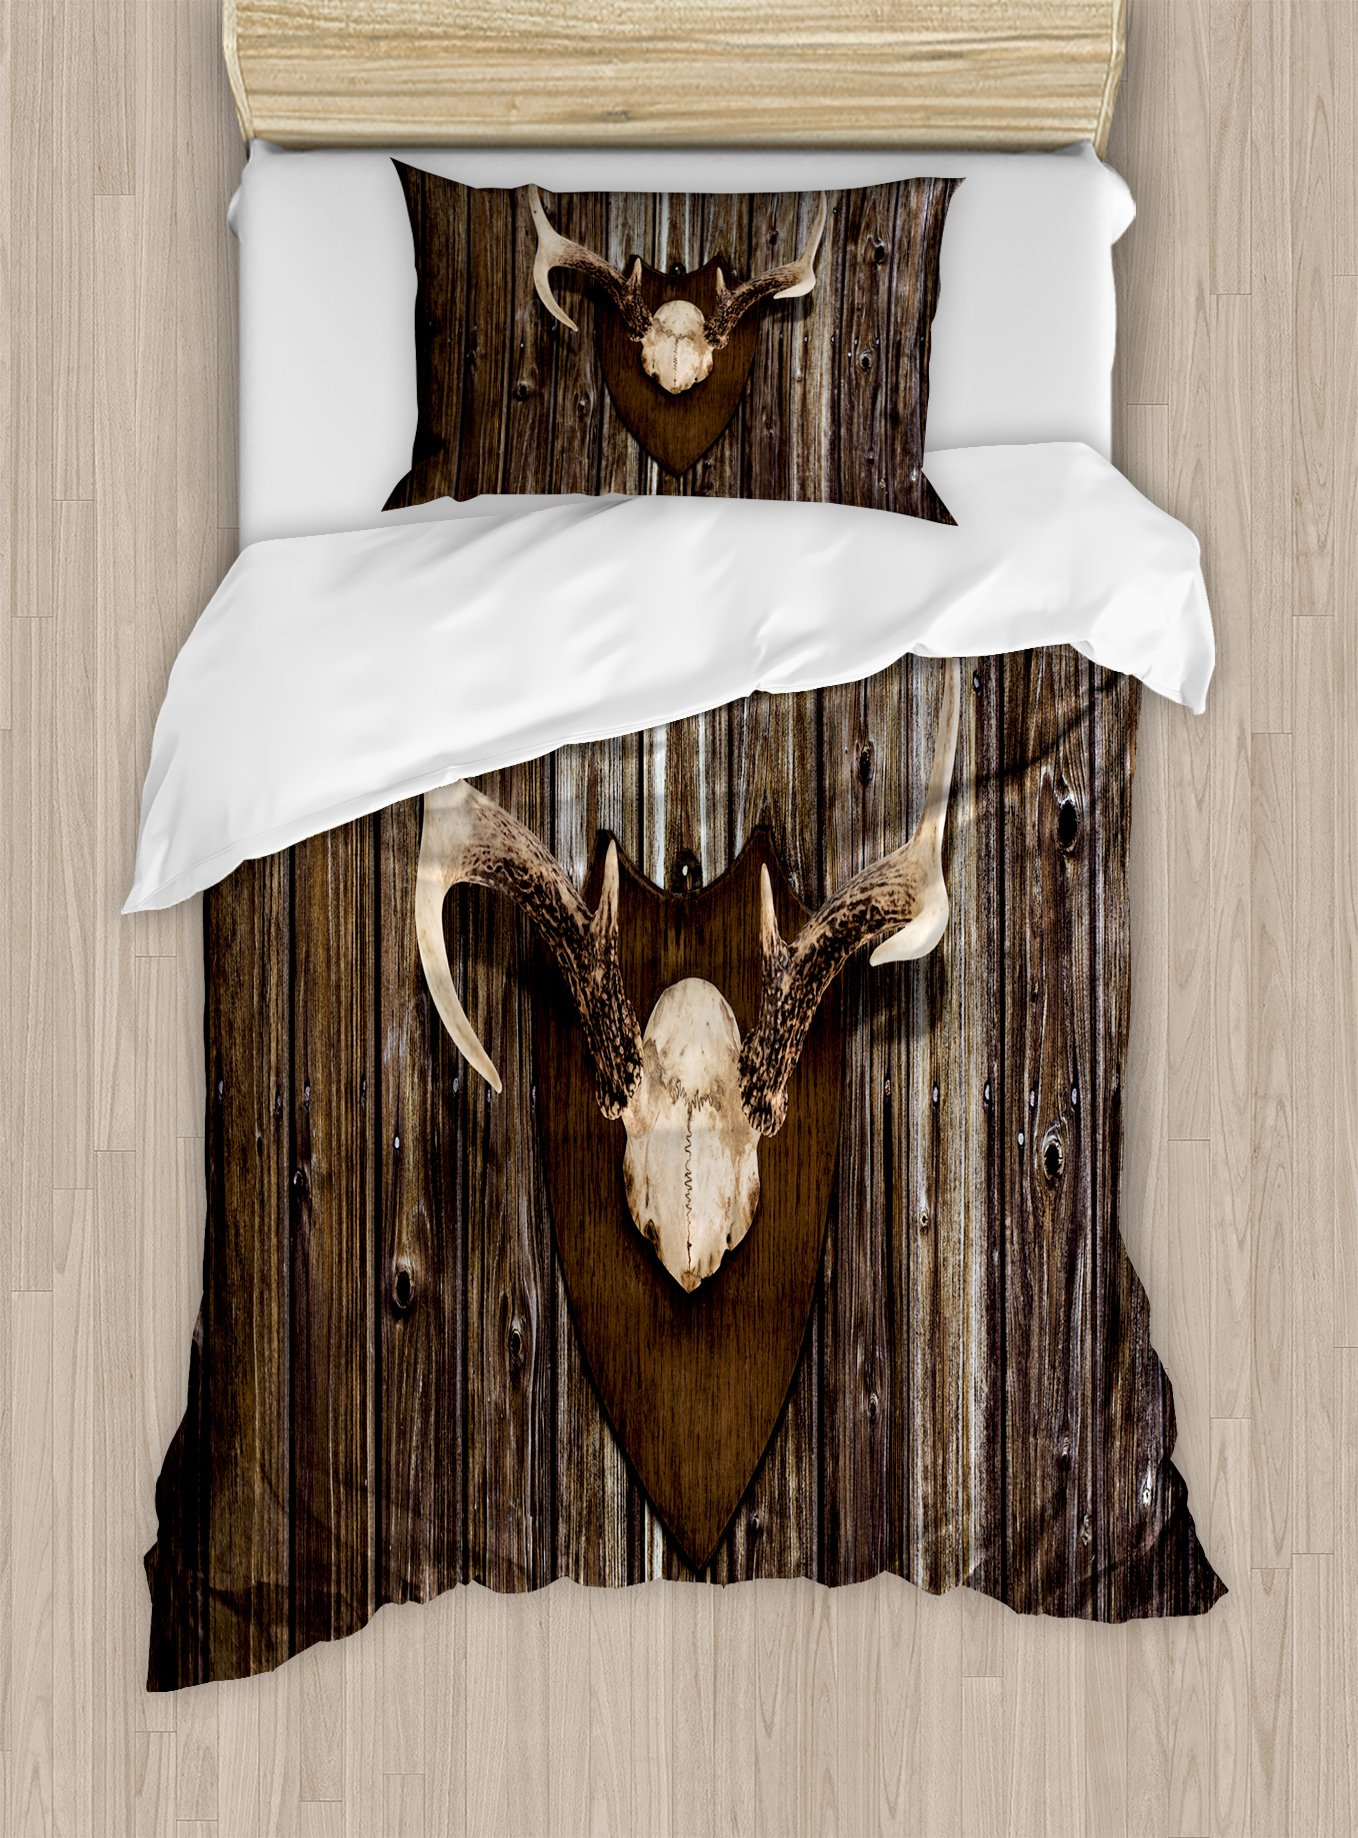 Ambesonne Antler Duvet Cover Set Twin Size, Rustic Home Cottage Cabin Wall with Antlers Hunting Lodge Country House Trophy Print, Decorative 2 Piece Bedding Set with 1 Pillow Sham, Brown